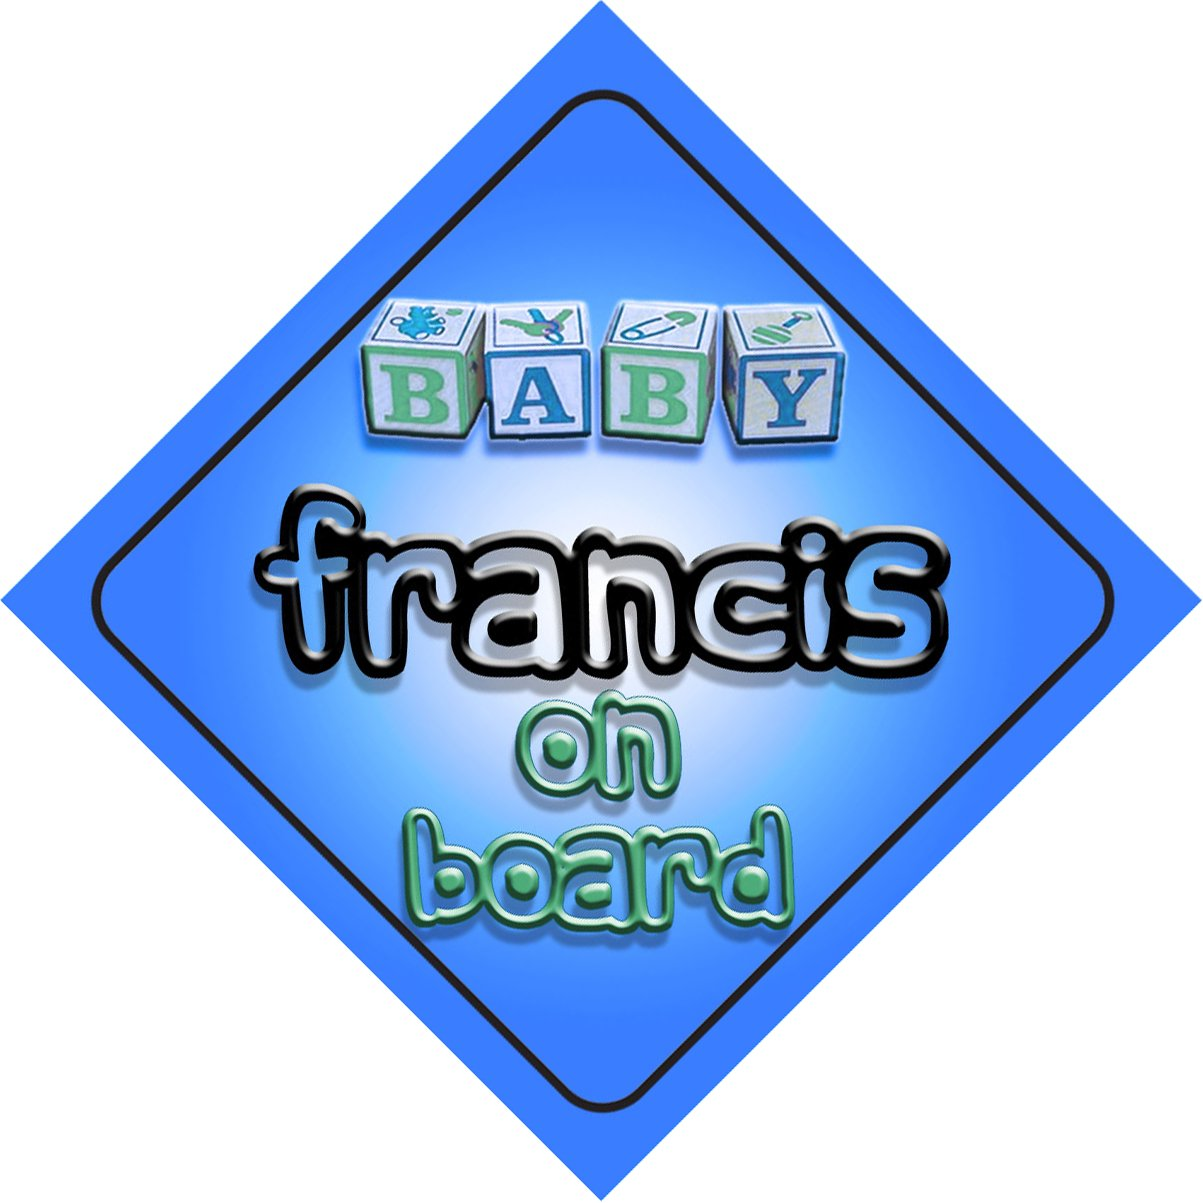 Baby Boy Francis on board novelty car sign gift / present for new child / newborn baby Quality Goods Ltd